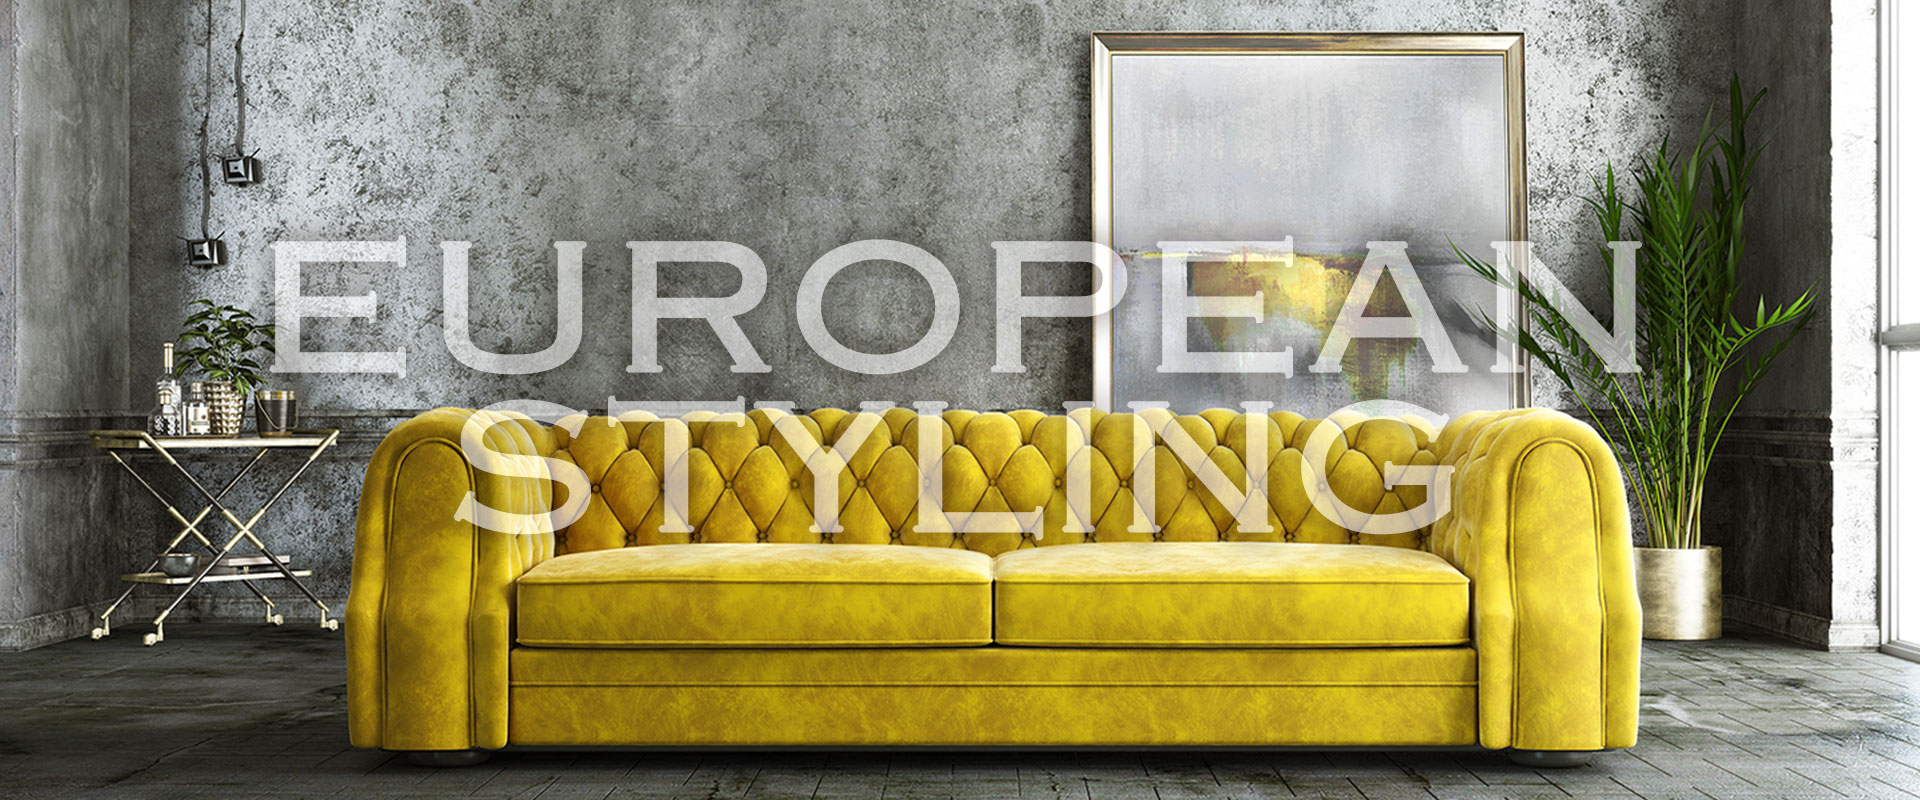 European Styling